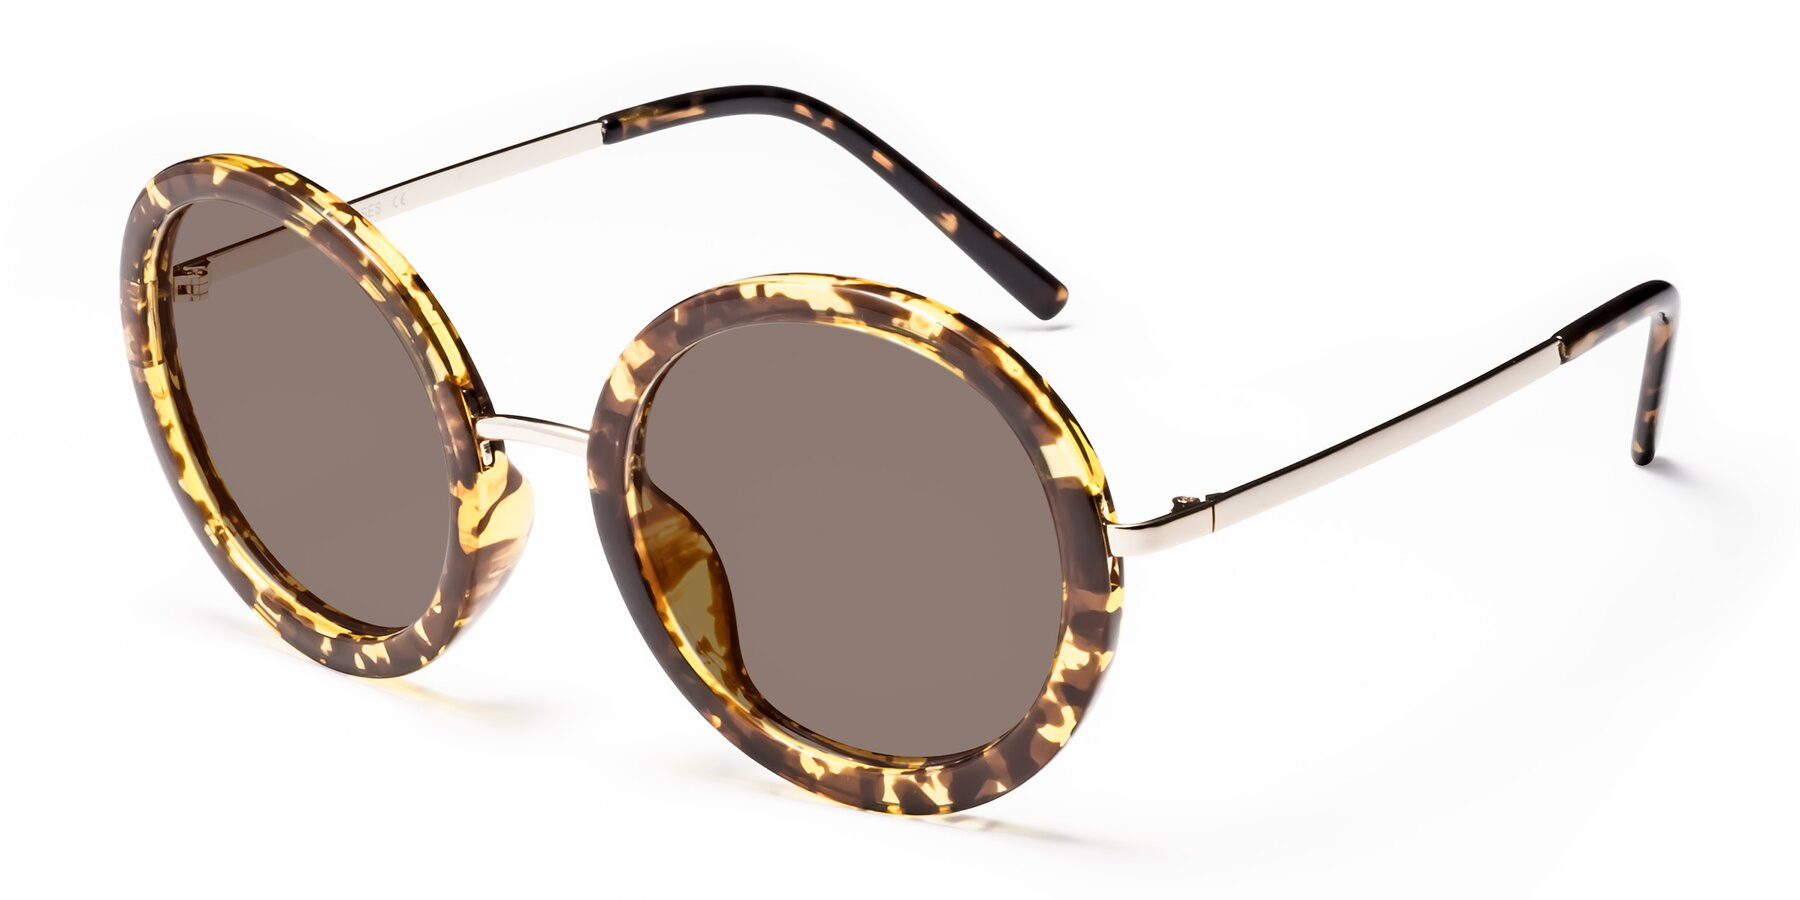 Angle of Bloom in Transparent Tortoise with Medium Brown Tinted Lenses